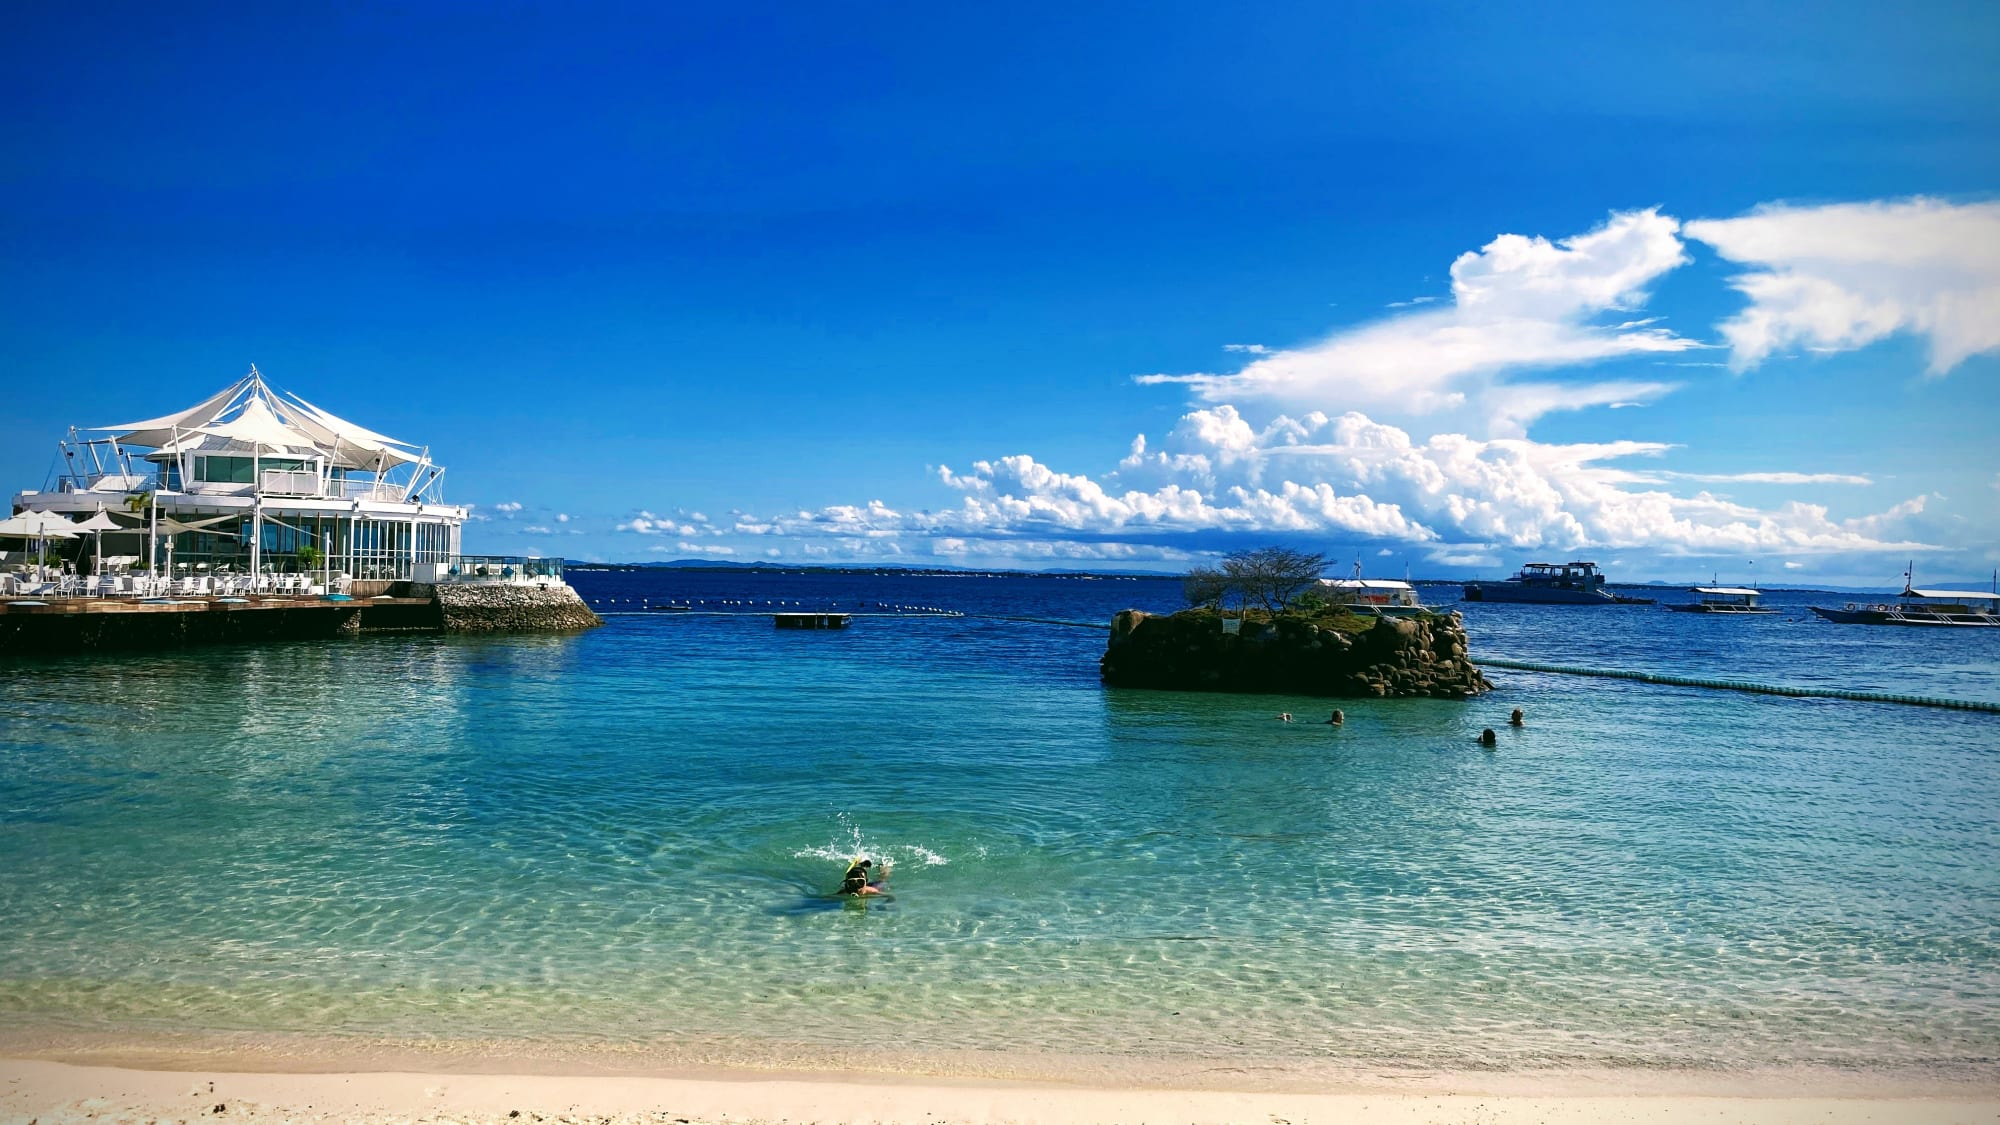 Lapu-Lapu City eased travel restrictions to domestic tourists